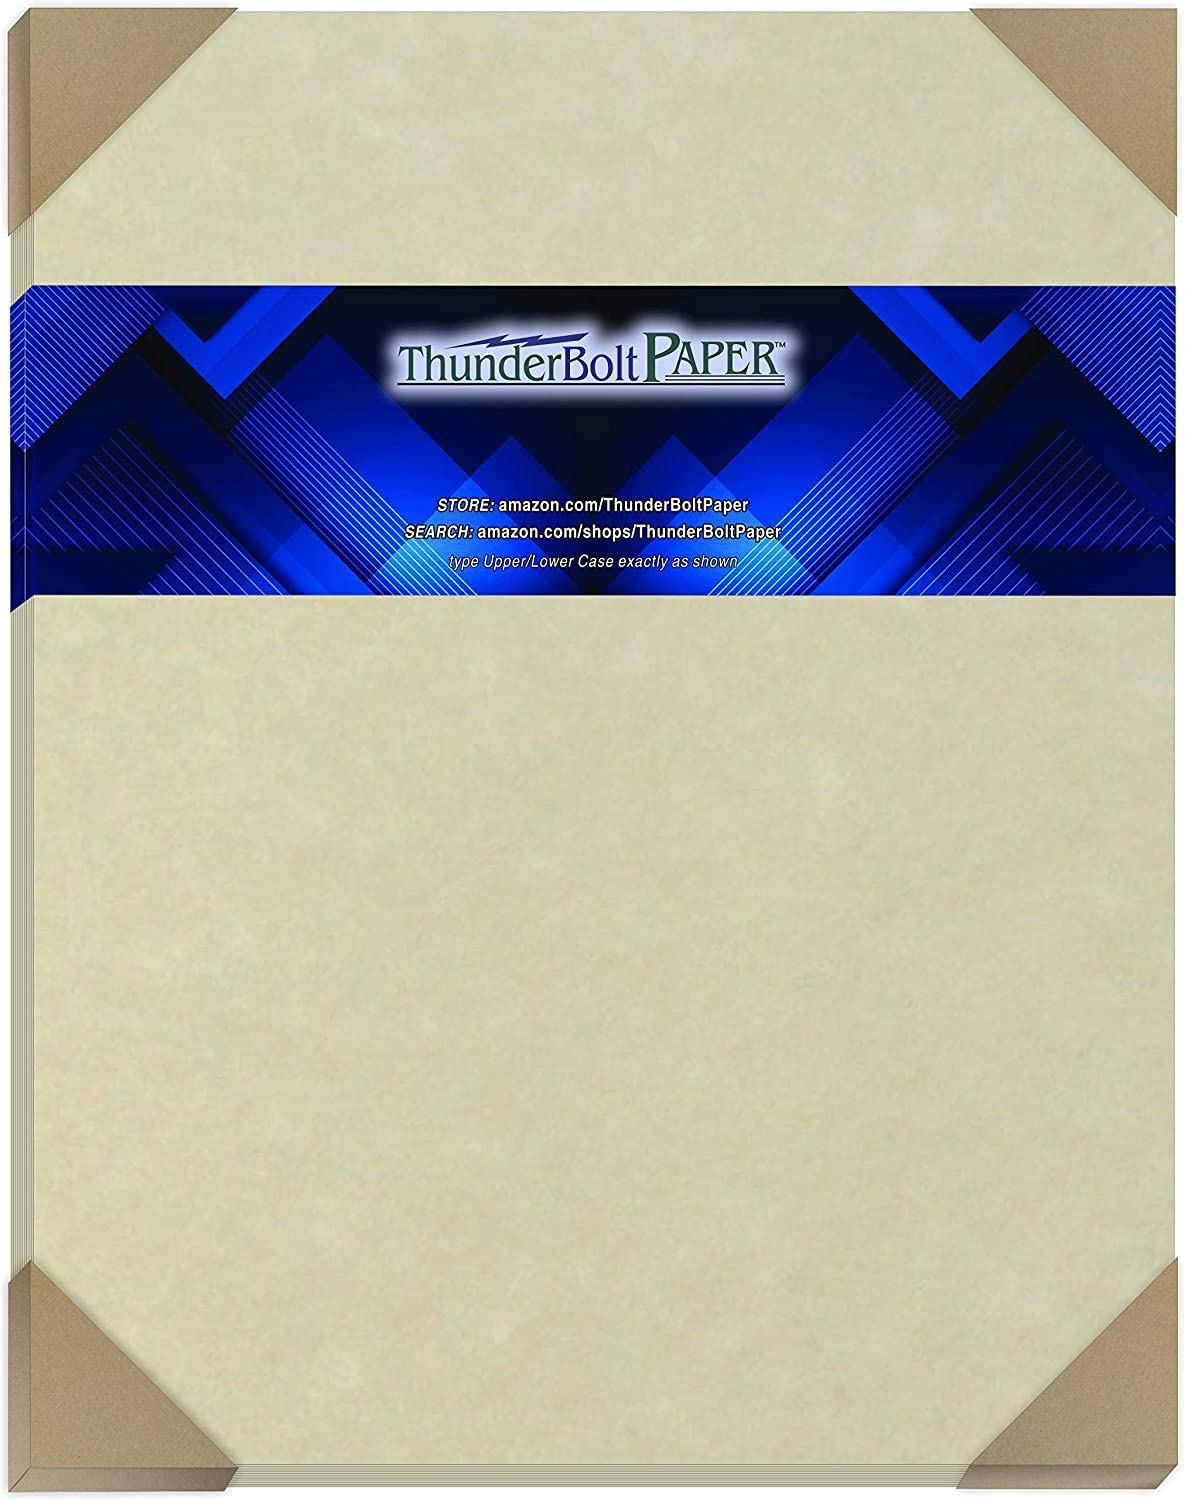 25 Natural Parchment 65lb Cover Paper Sheets 11 X 14 Inches Cardstock Weight Colored Sheets 11